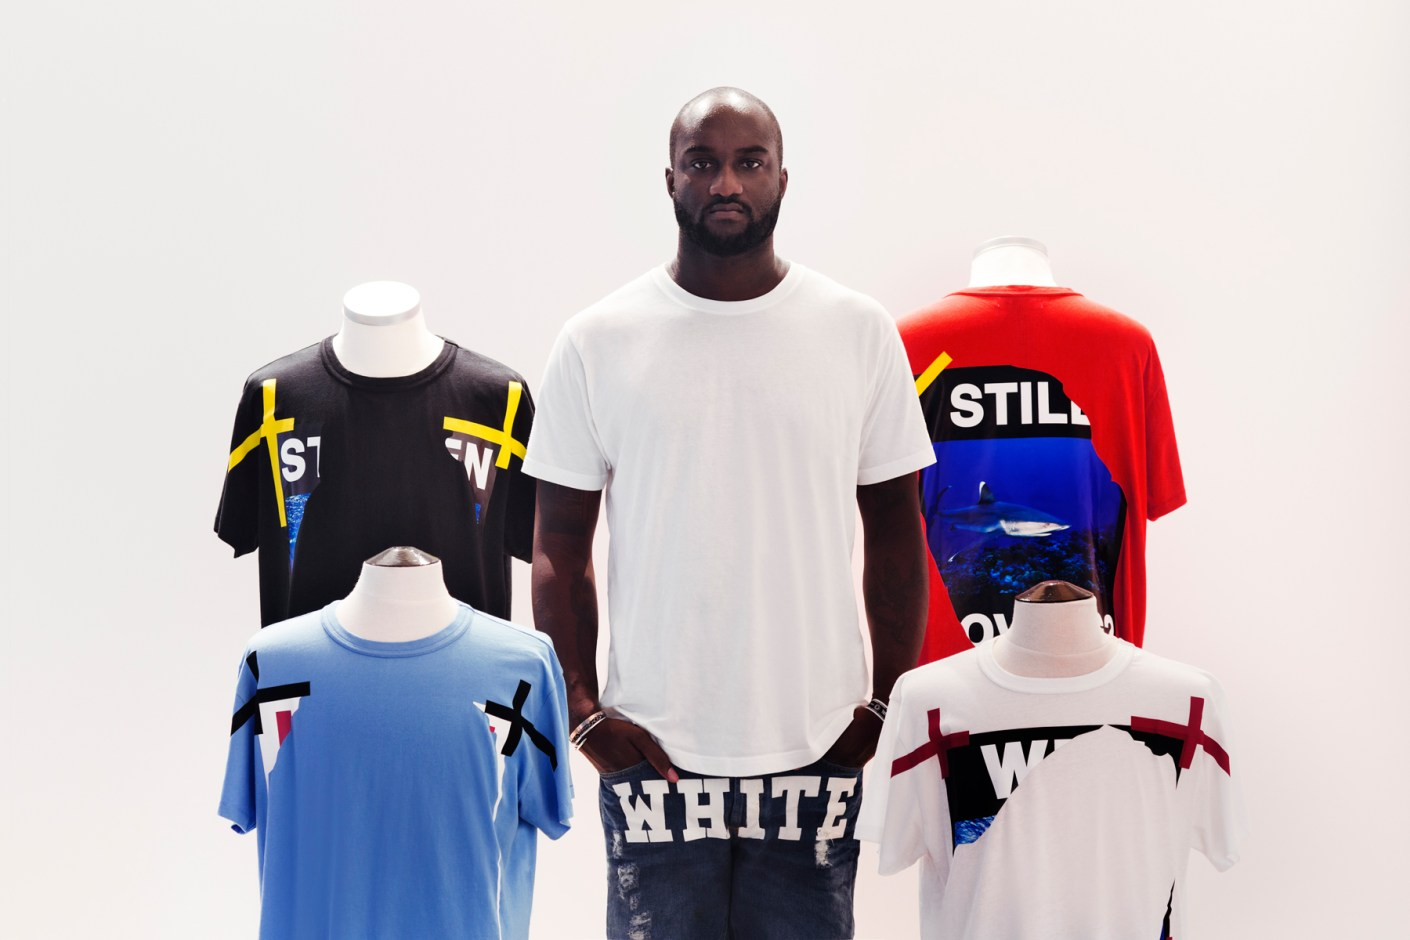 Image of OFF-WHITE c/o VIRGIL ABLOH Exhibit @ CIFF